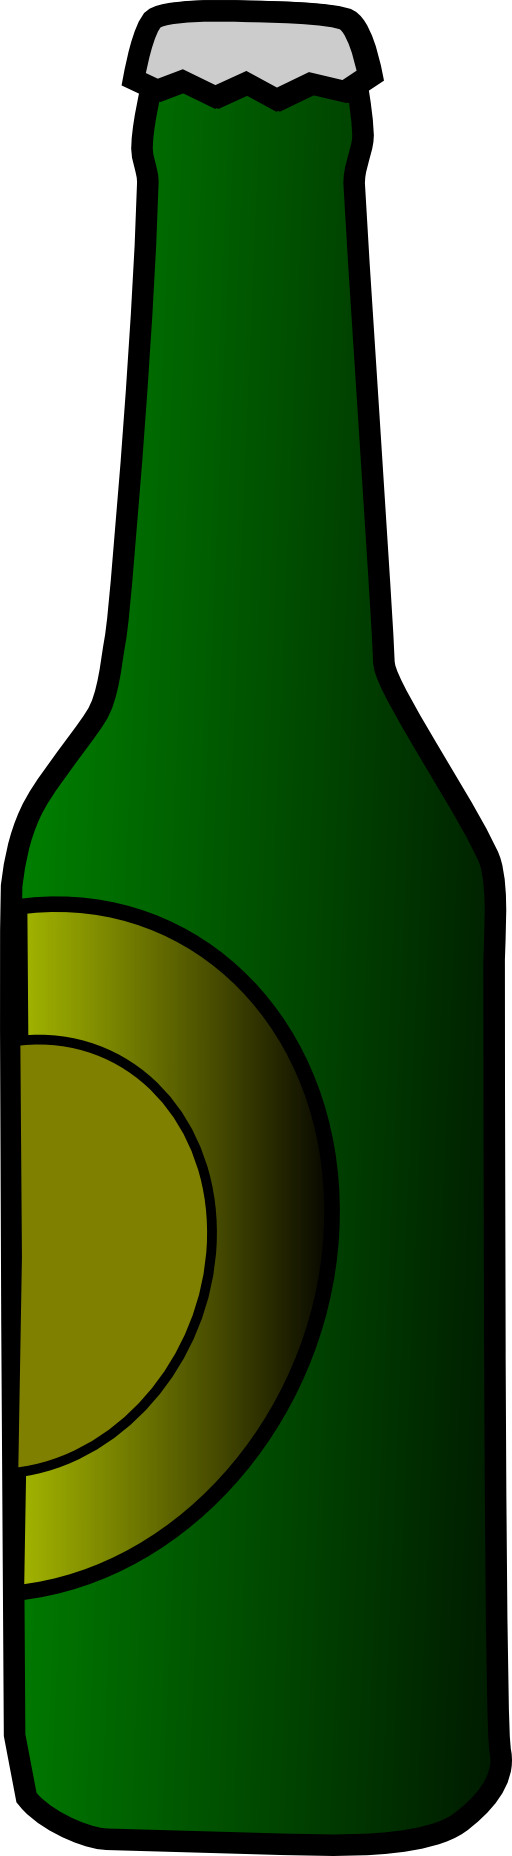 Beer Bottle Black And White Clipart Clipart Kid